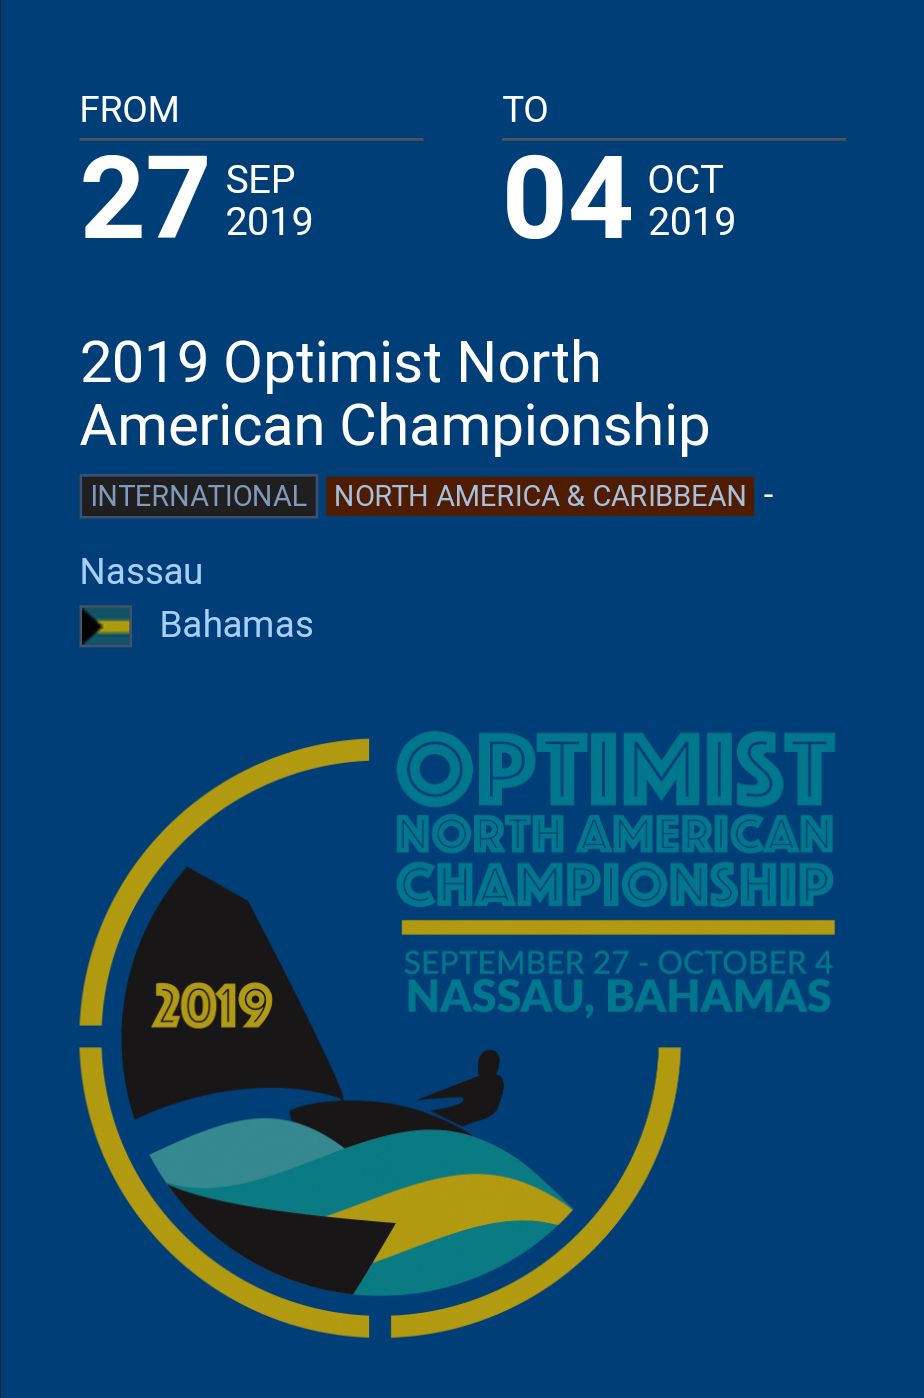 2019 Optimist North American Championship